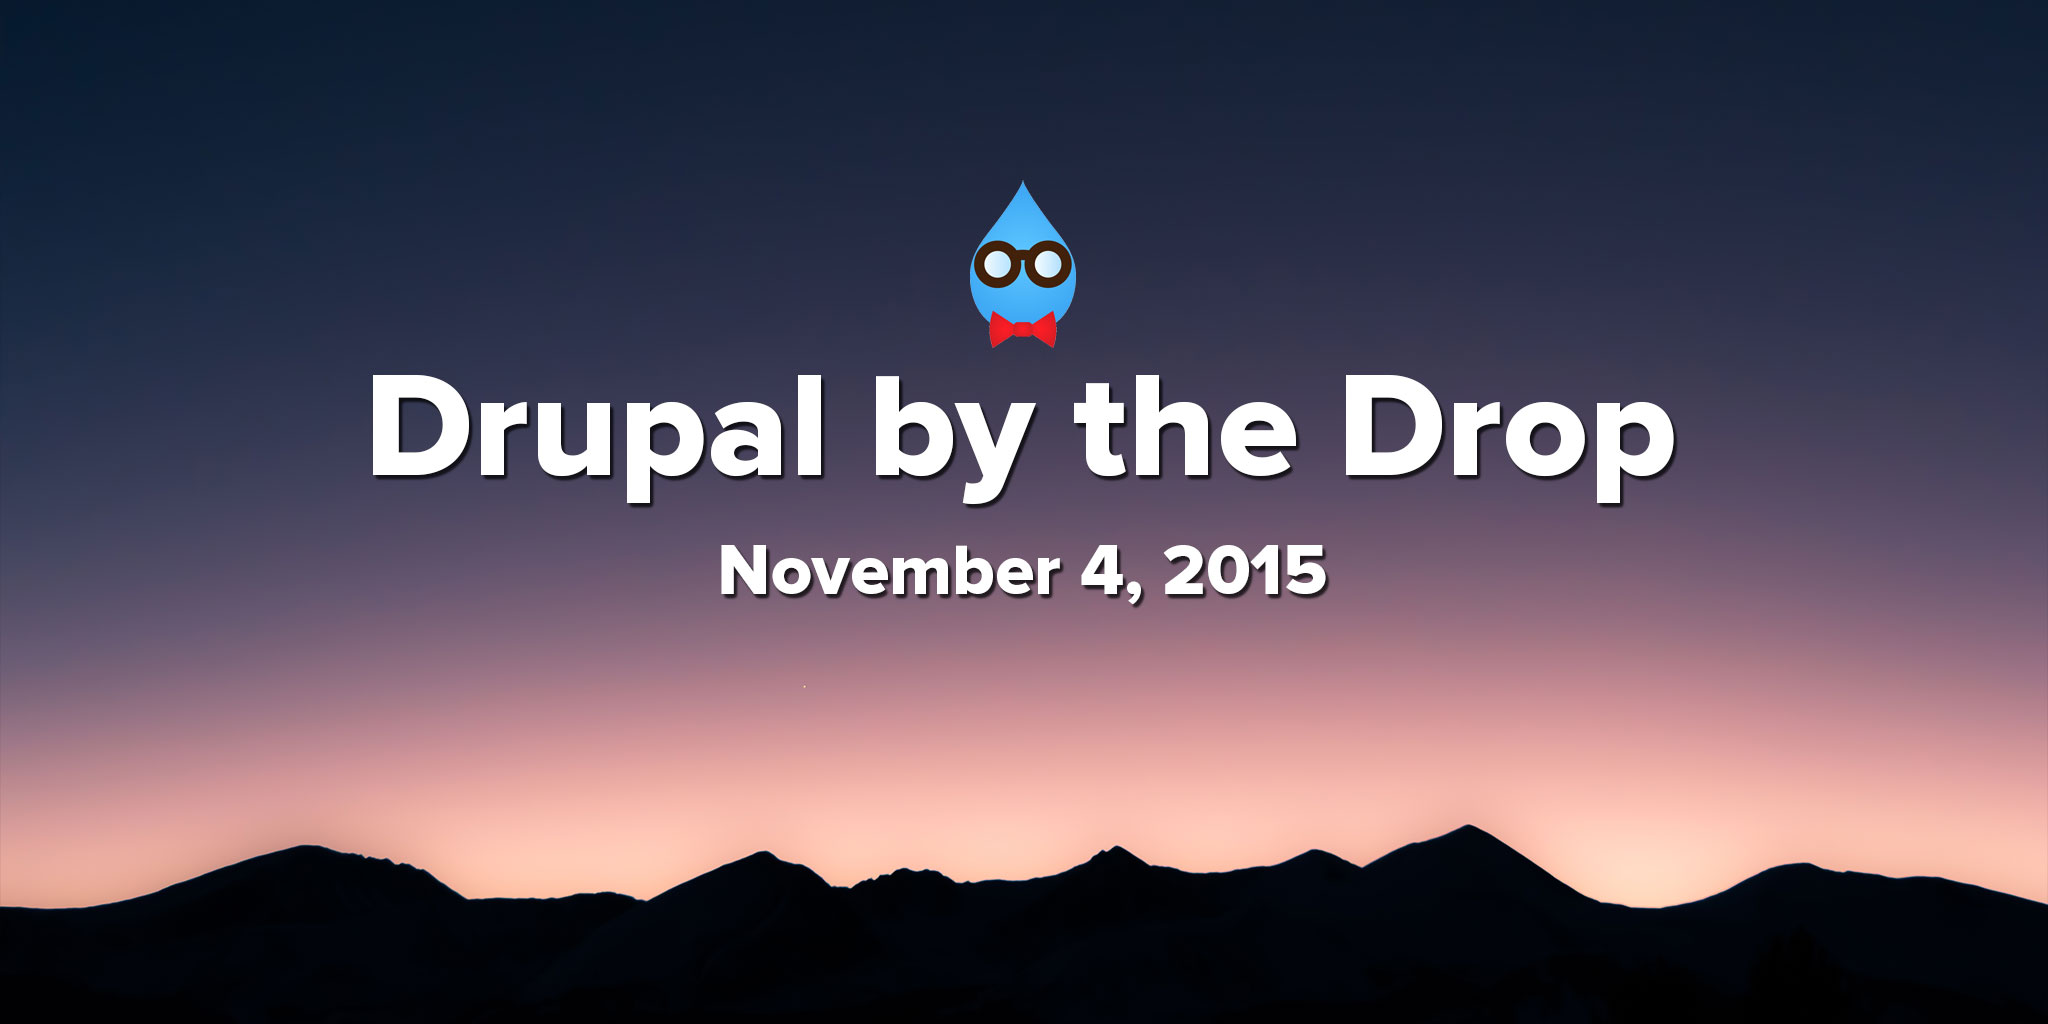 Drupal by the Drop: November 4, 2015